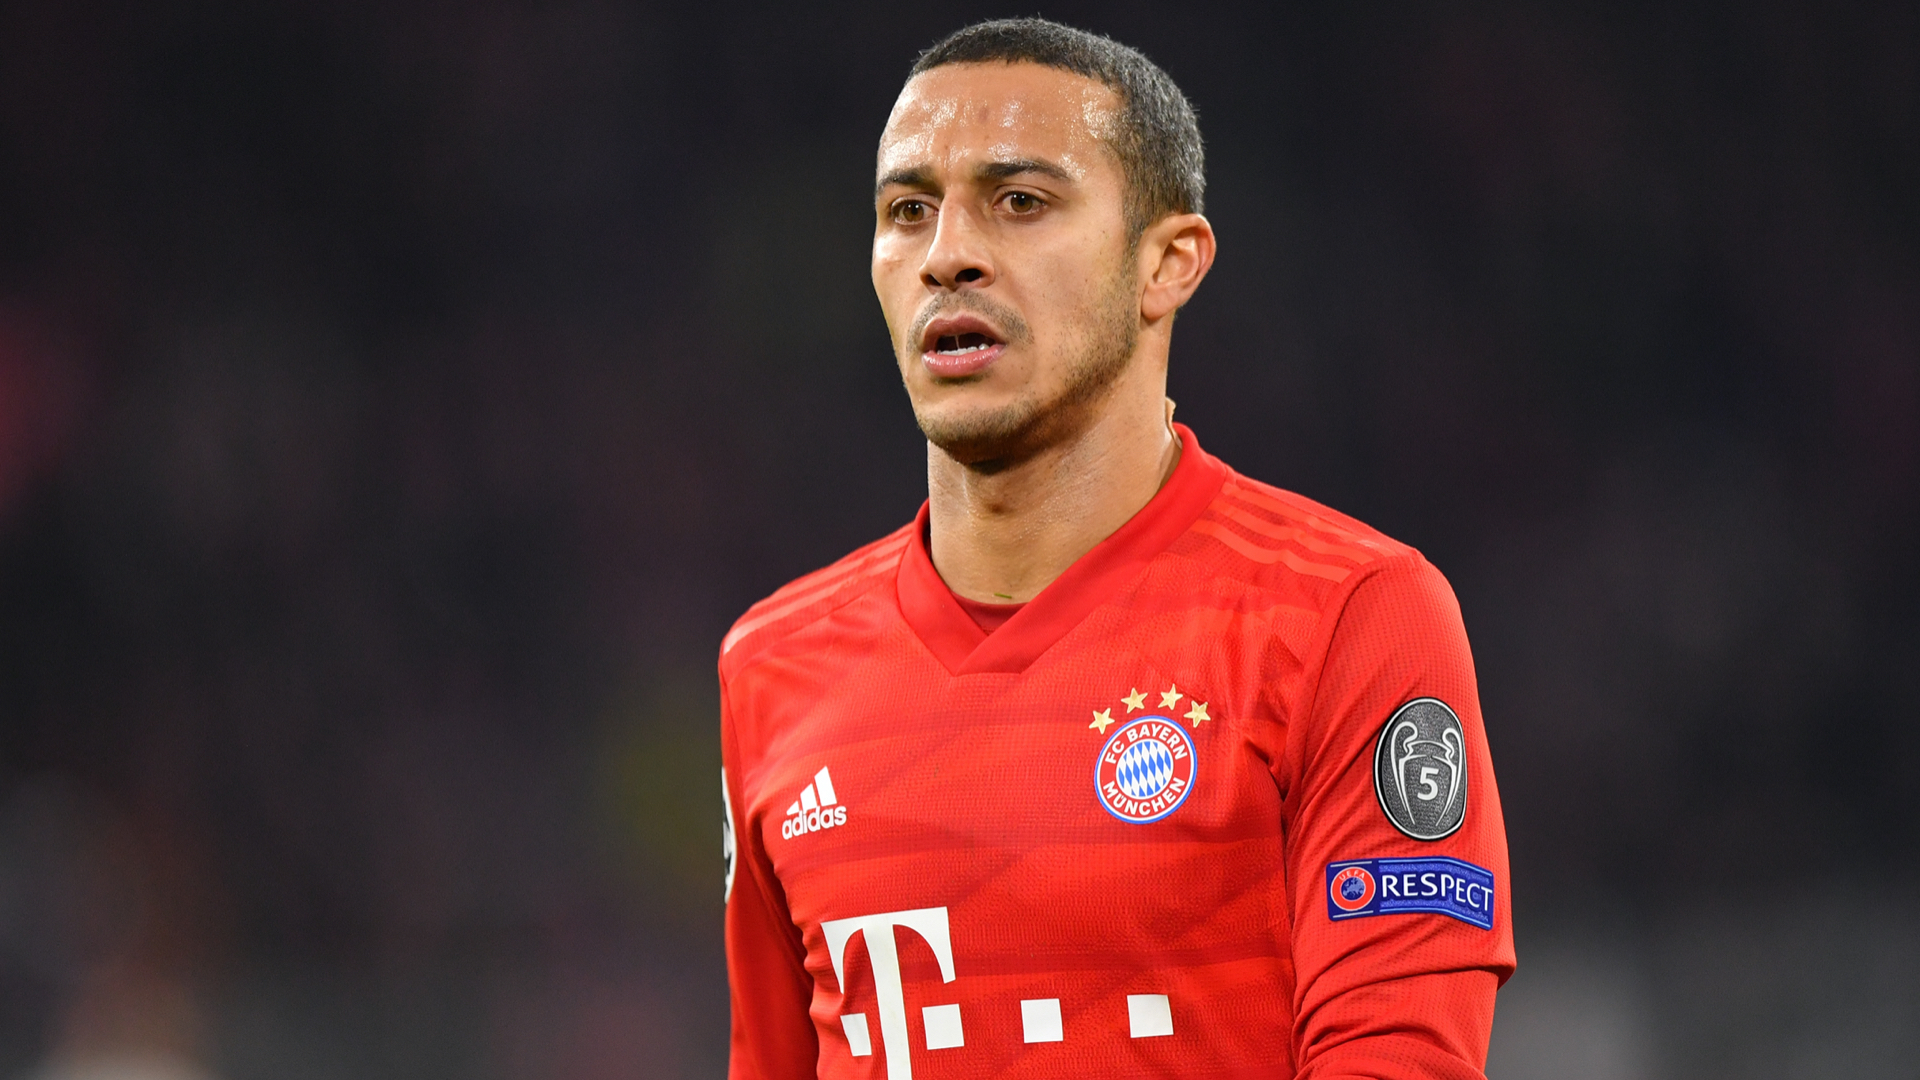 Thiago Bids Emotional Farewell To Bayern After Taking Most Difficult Decision To Leave For Liverpool Goal Com